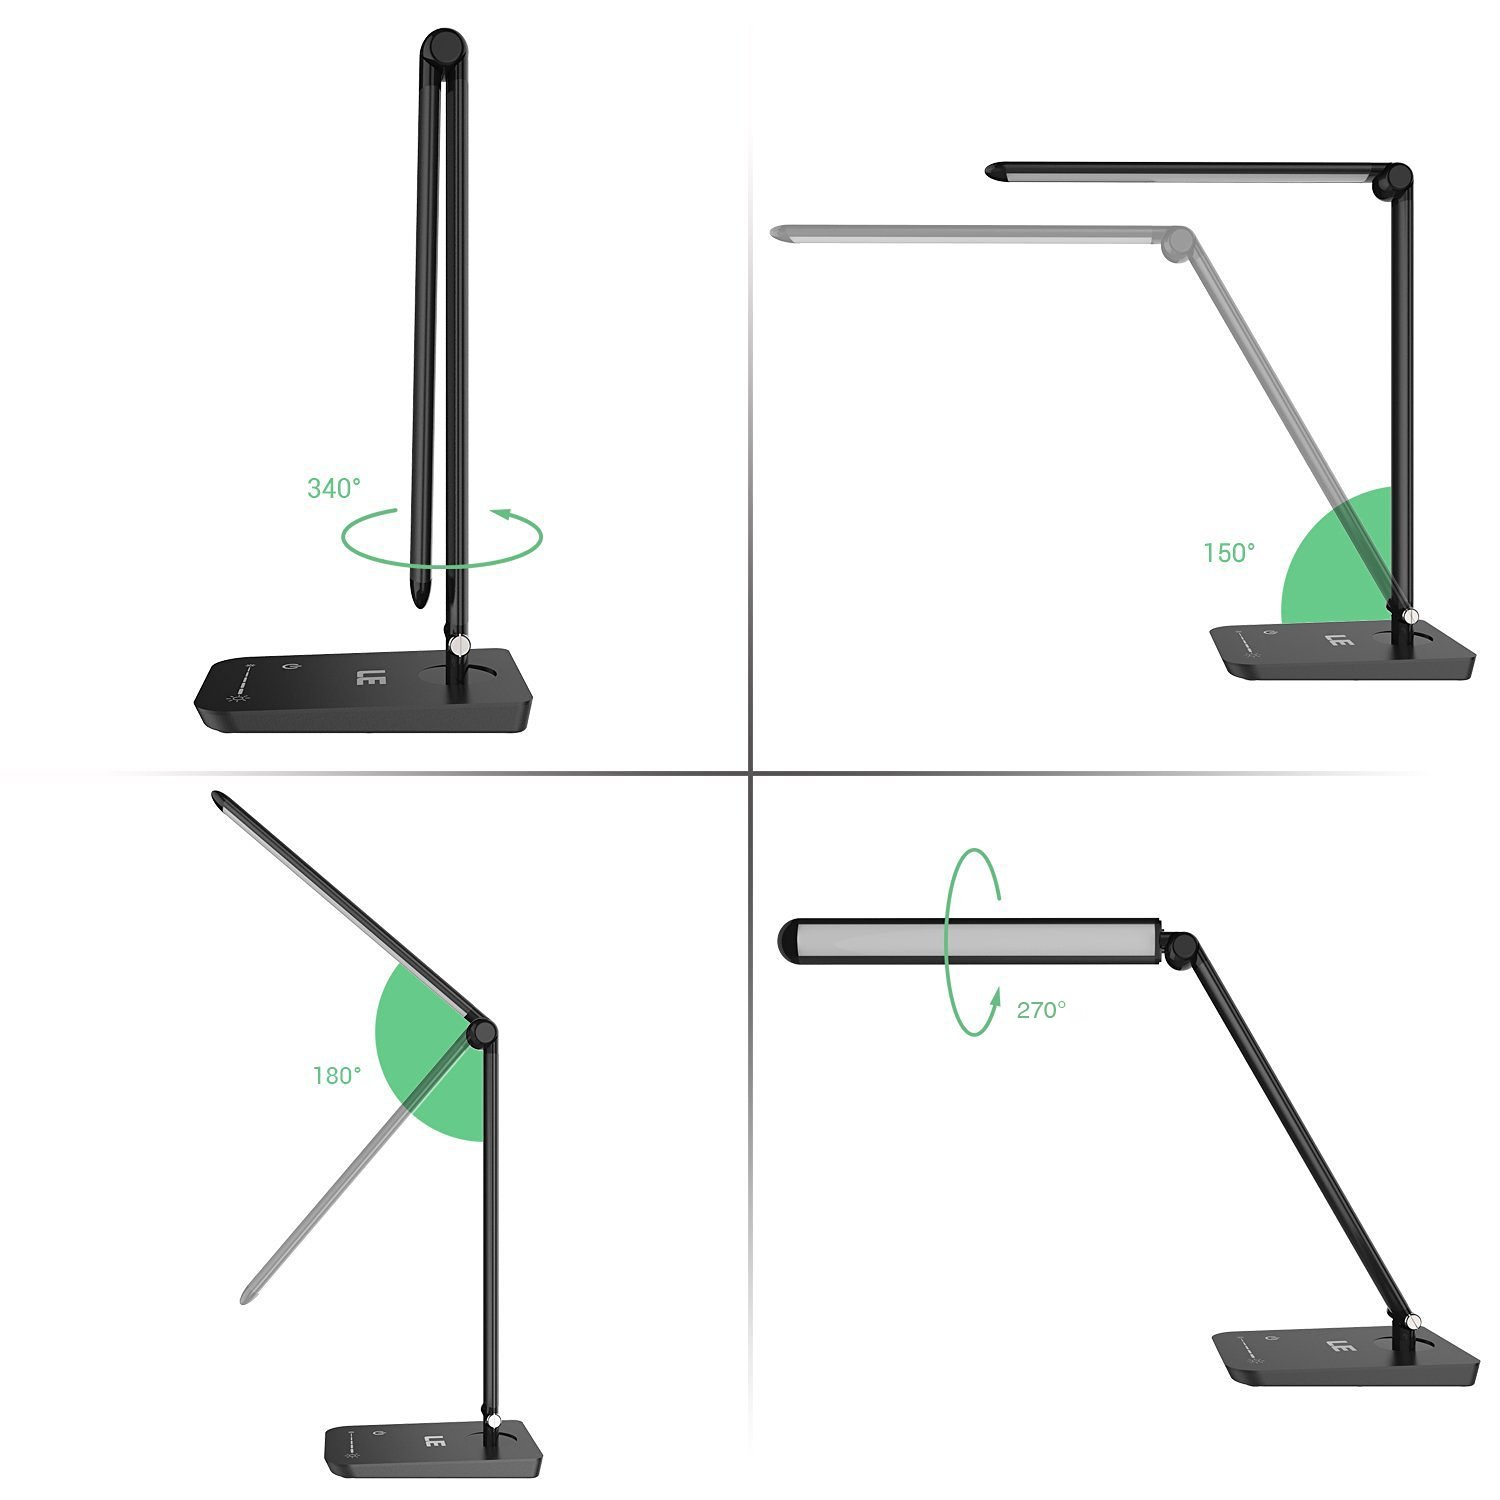 le dimmable led desk lamp 7 dimming levels eye care 8w touch